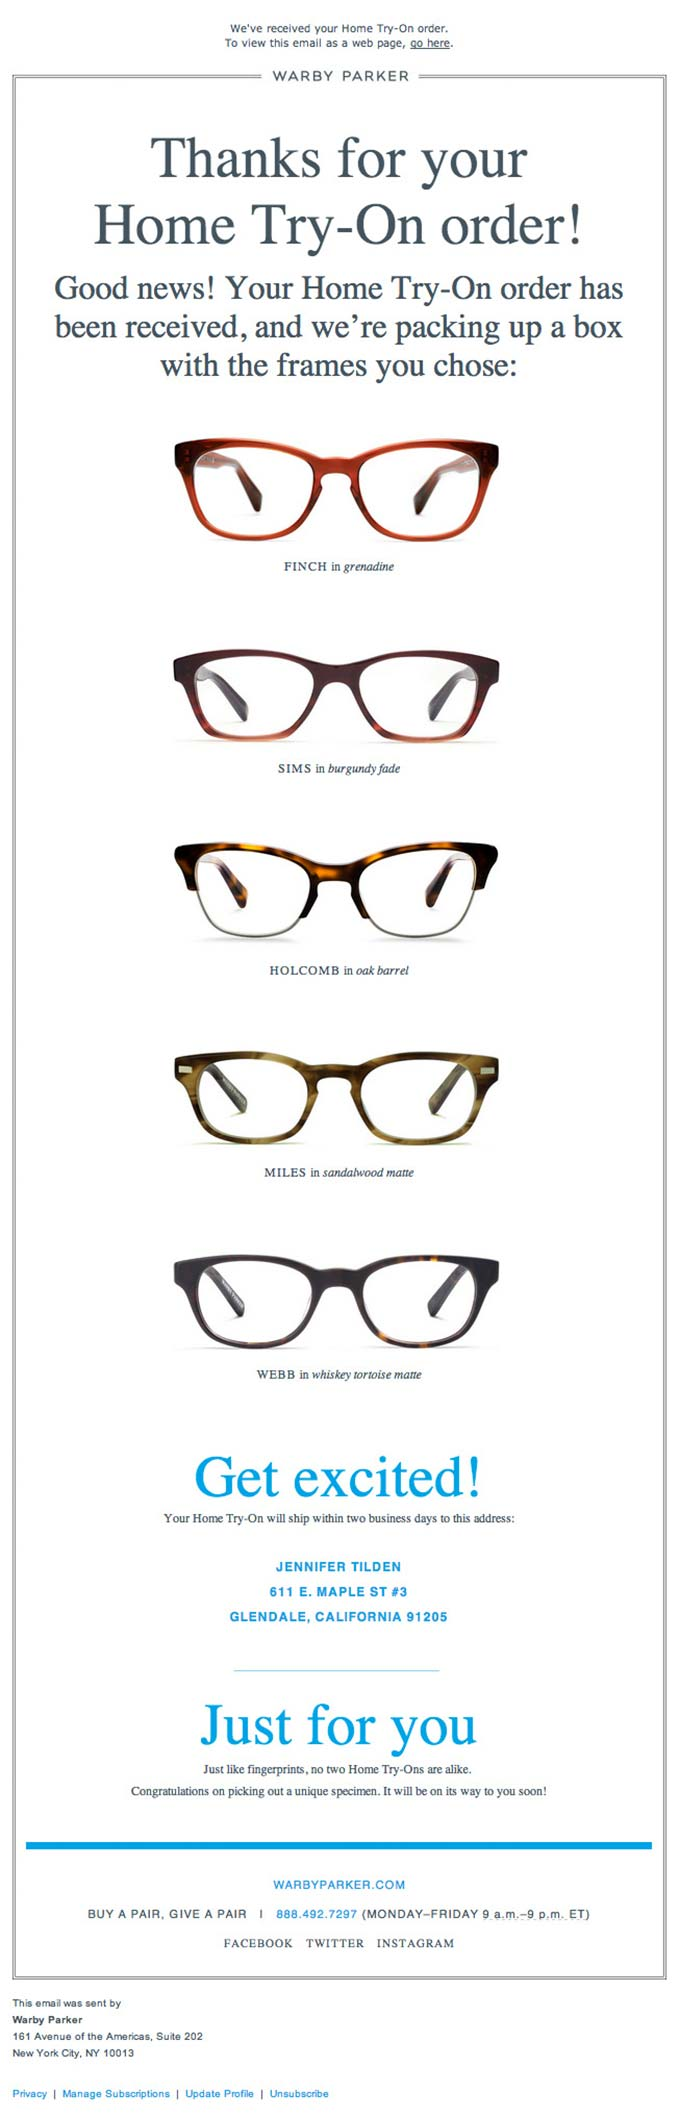 Transactional Update Email Design from Warby Parker